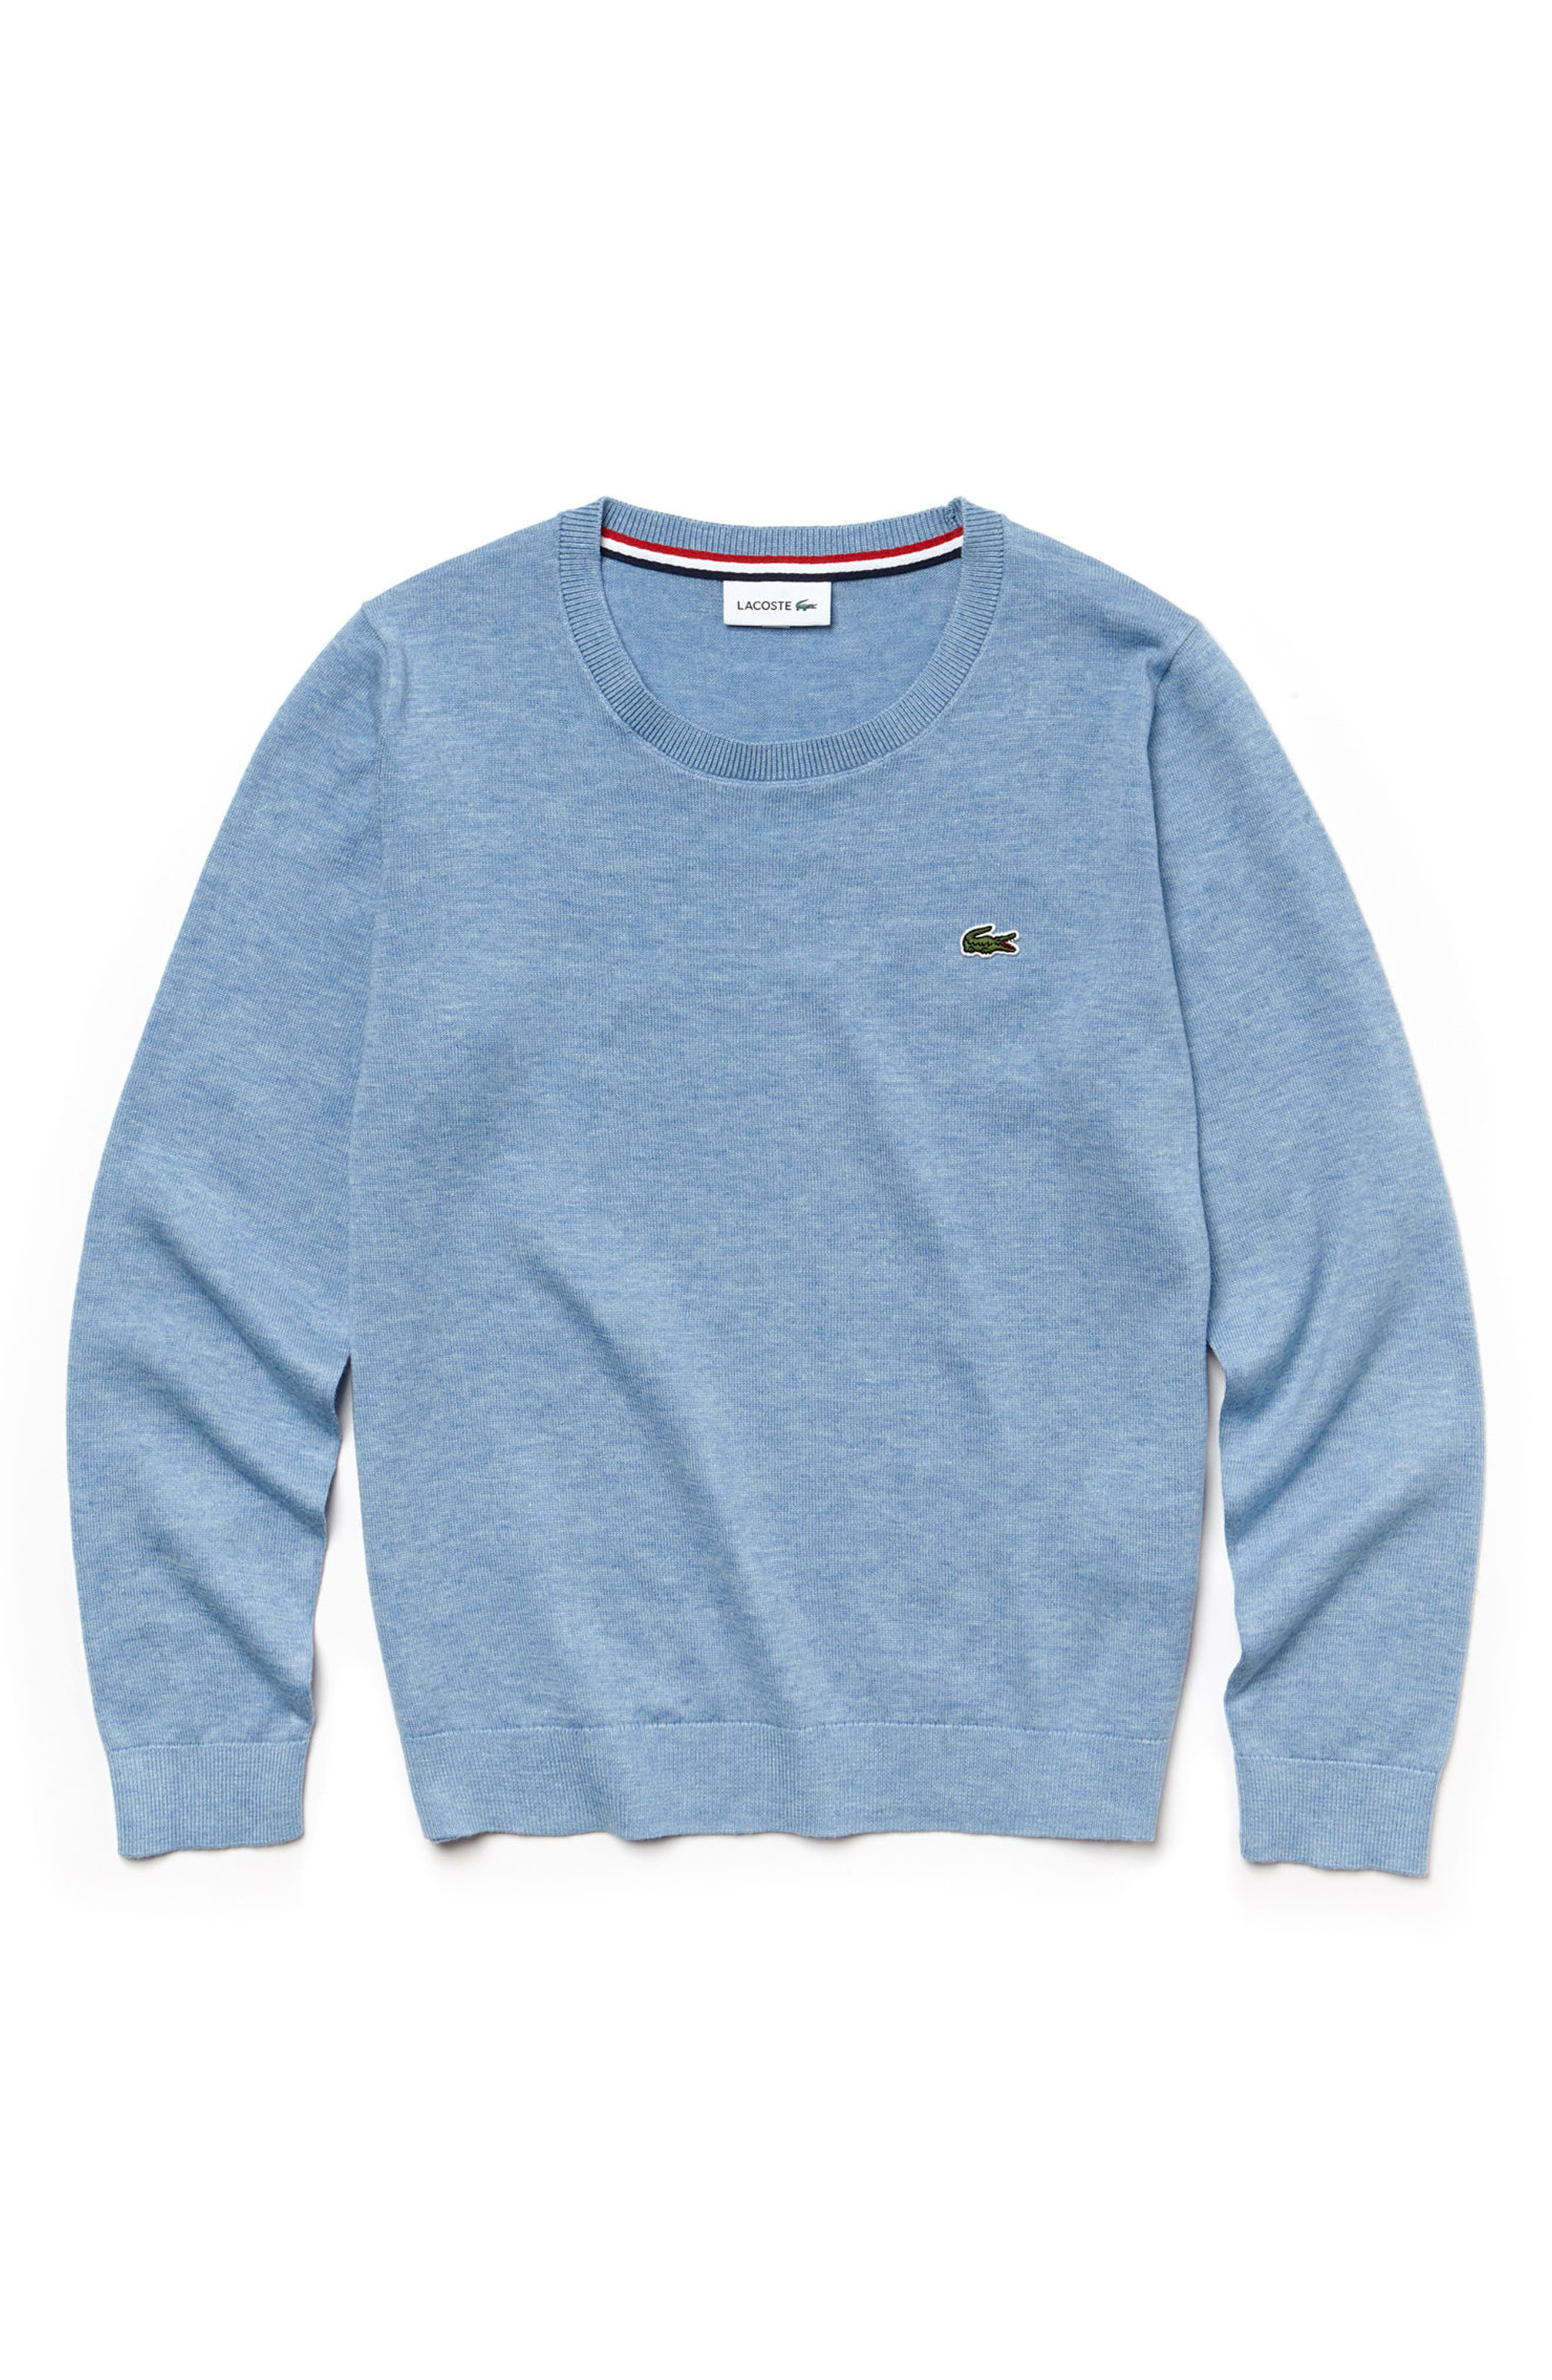 Classic Jersey Crewneck Sweater,                             Main thumbnail 1, color,                             Dragonfly Blue